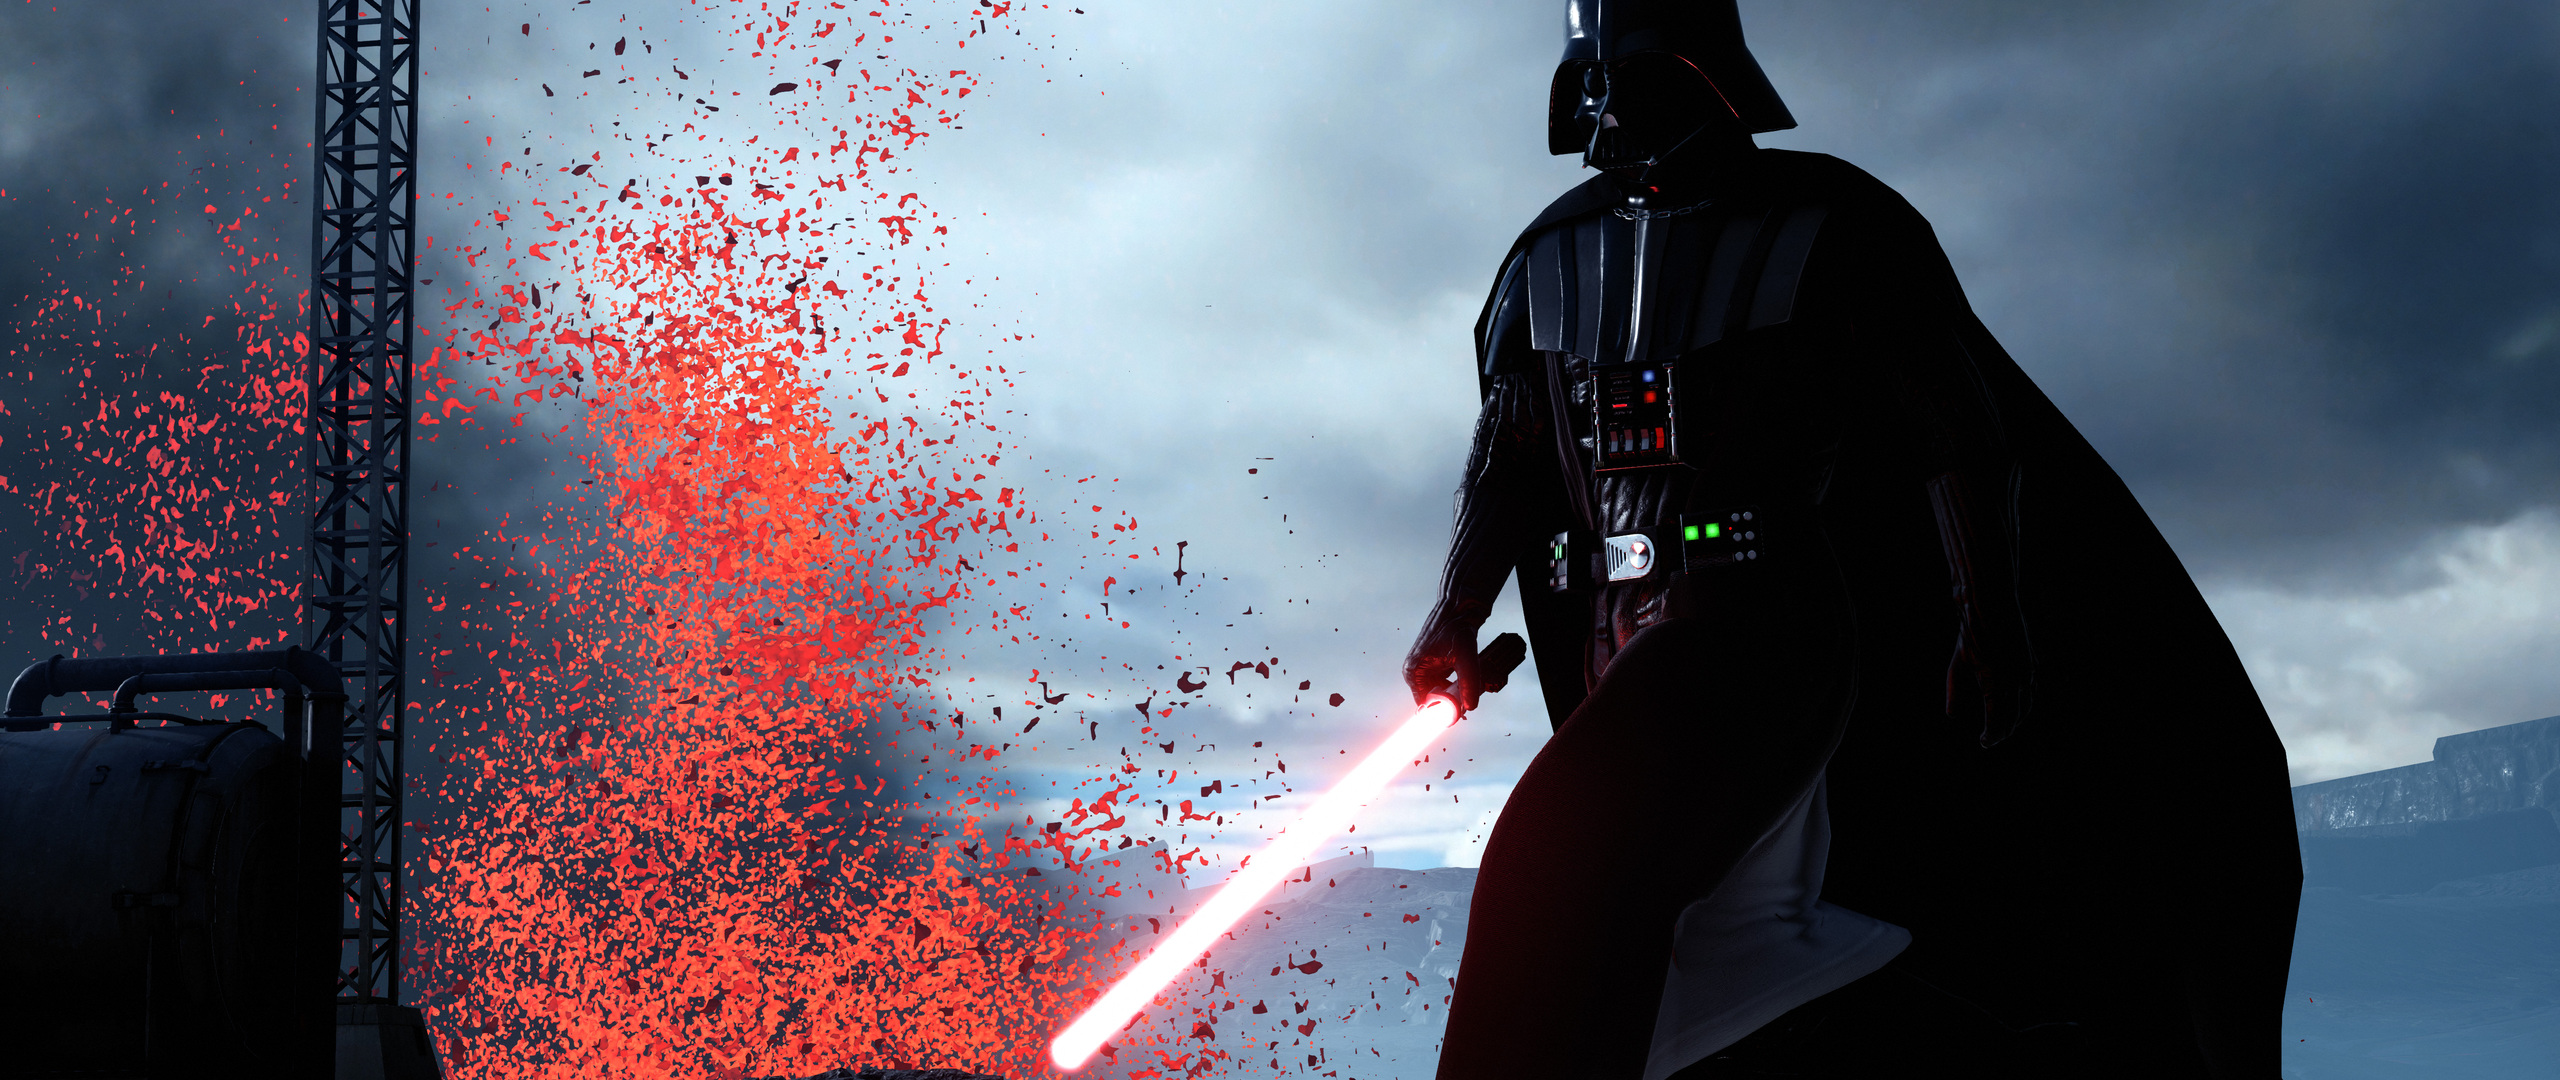 2560x1080 Darth Vader Star Wars Battlefront 5k 2560x1080 Resolution Hd 4k Wallpapers Images Backgrounds Photos And Pictures